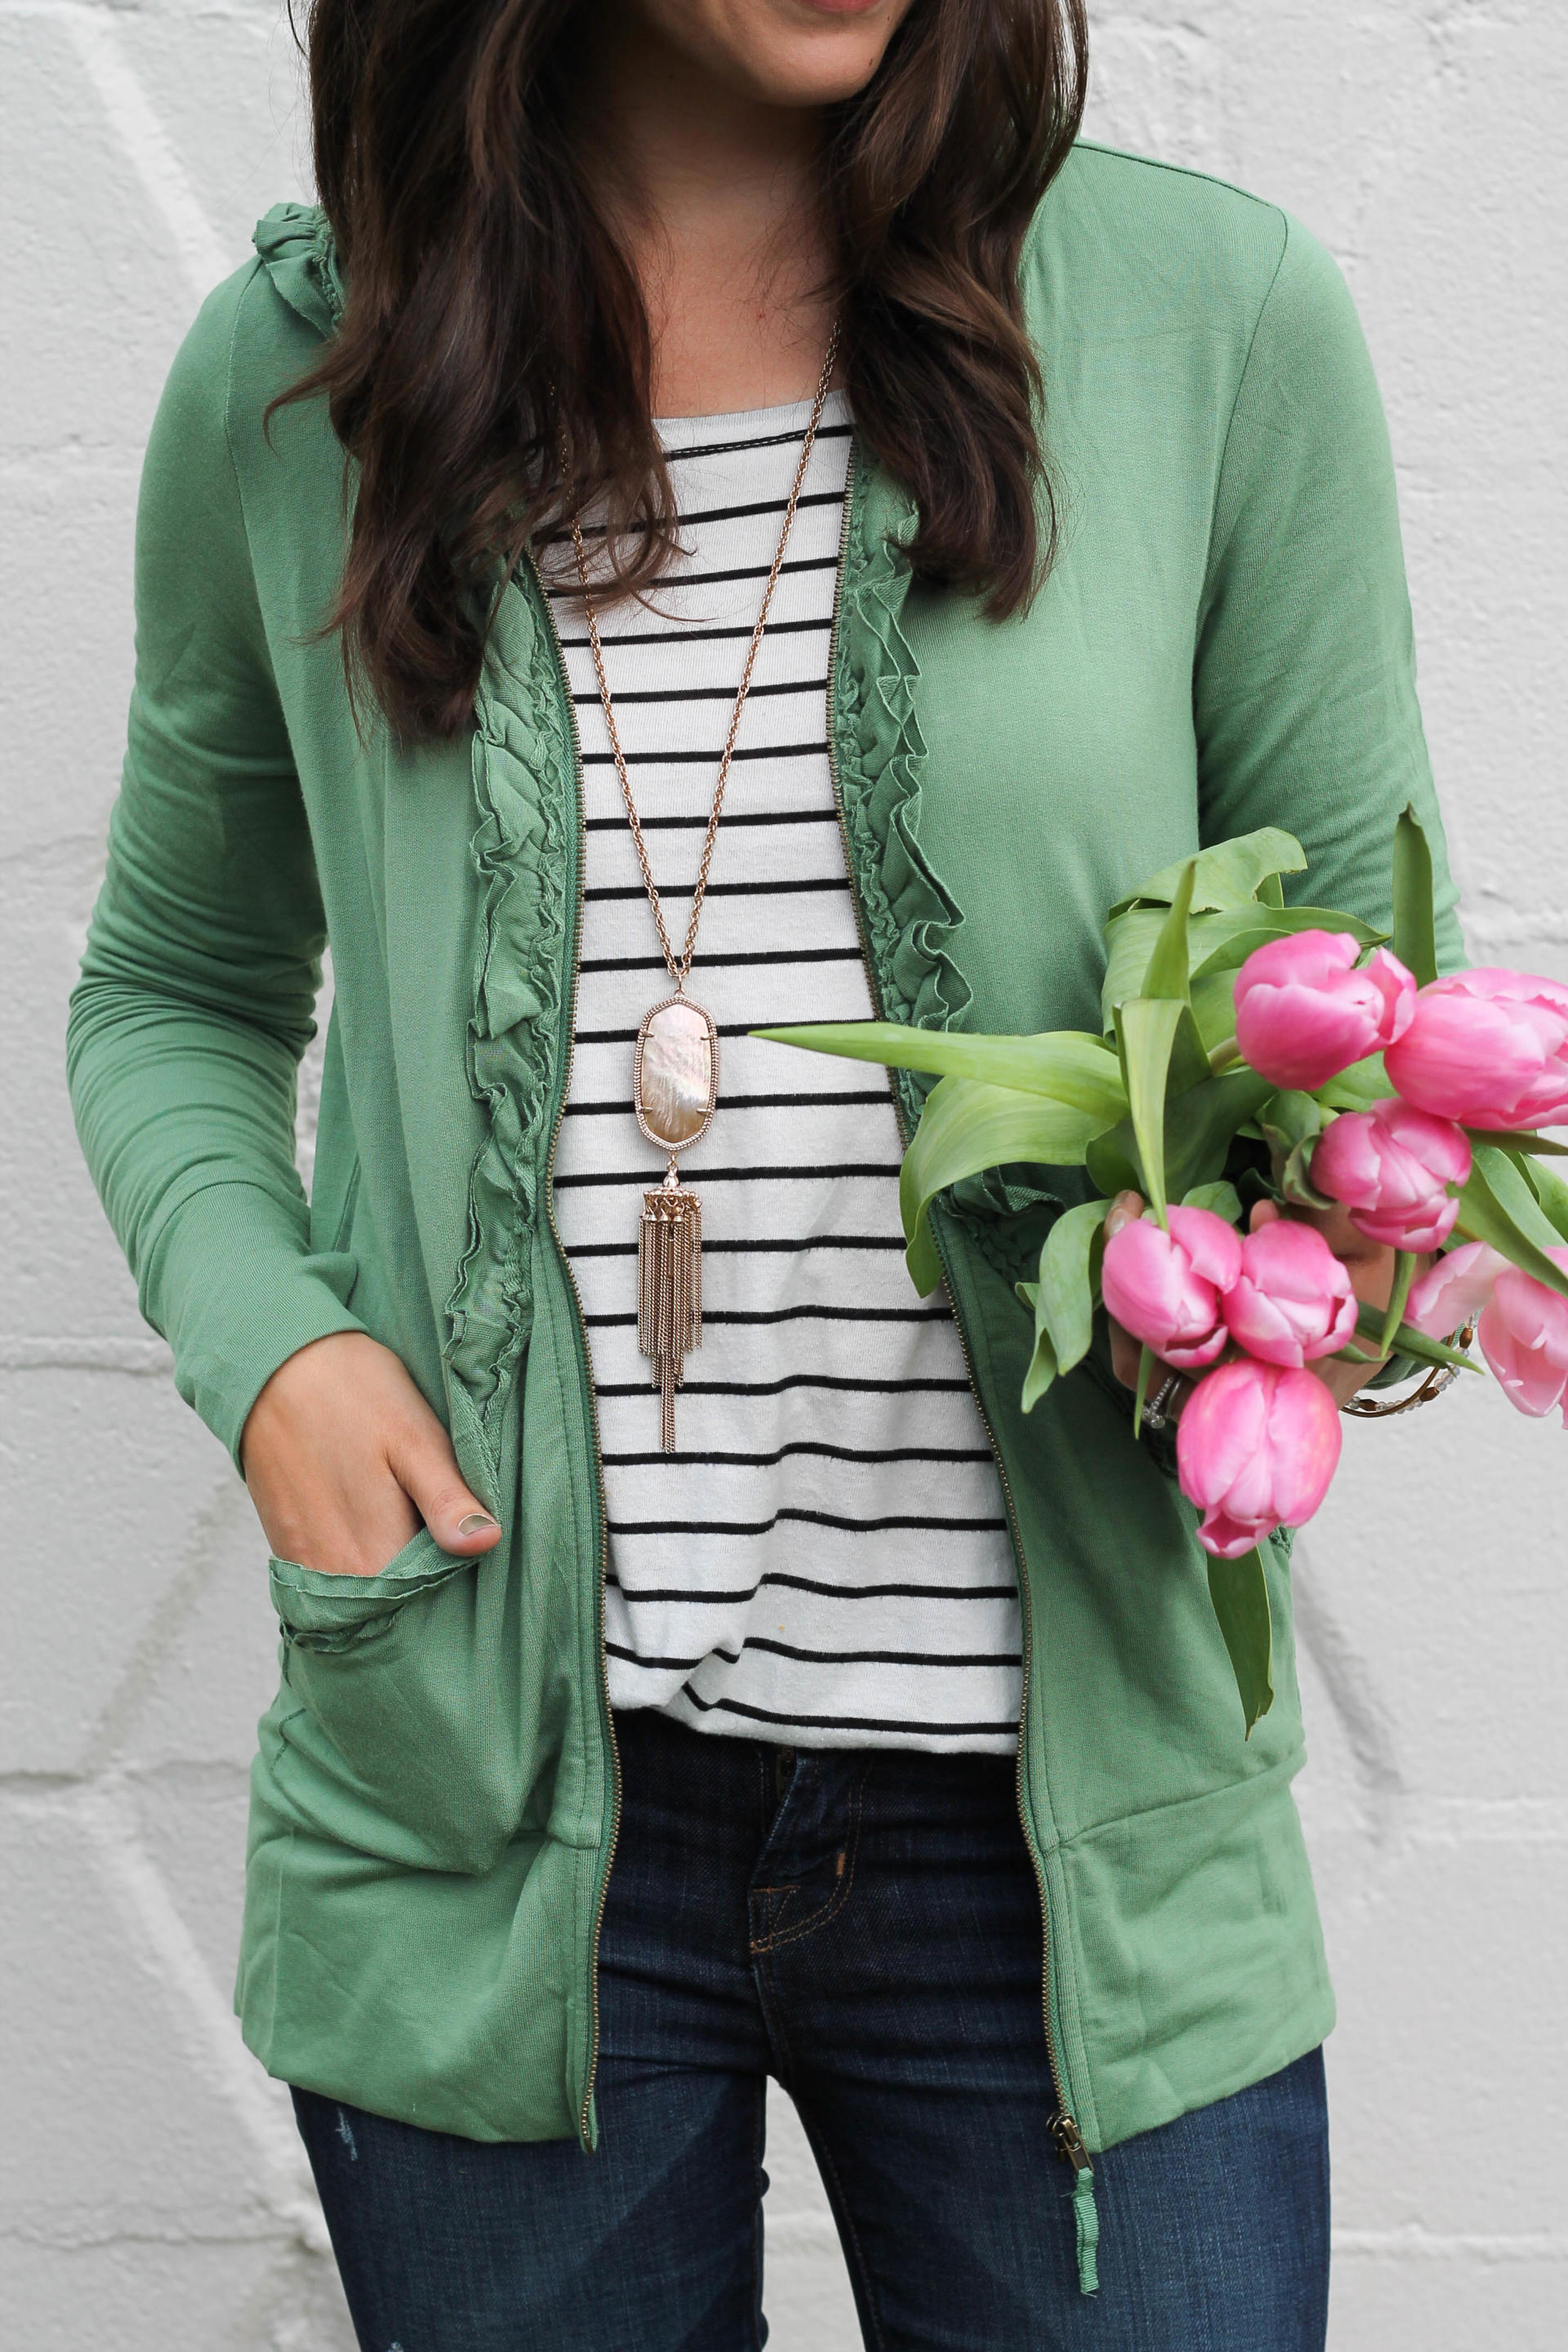 A Green Spring Jacket